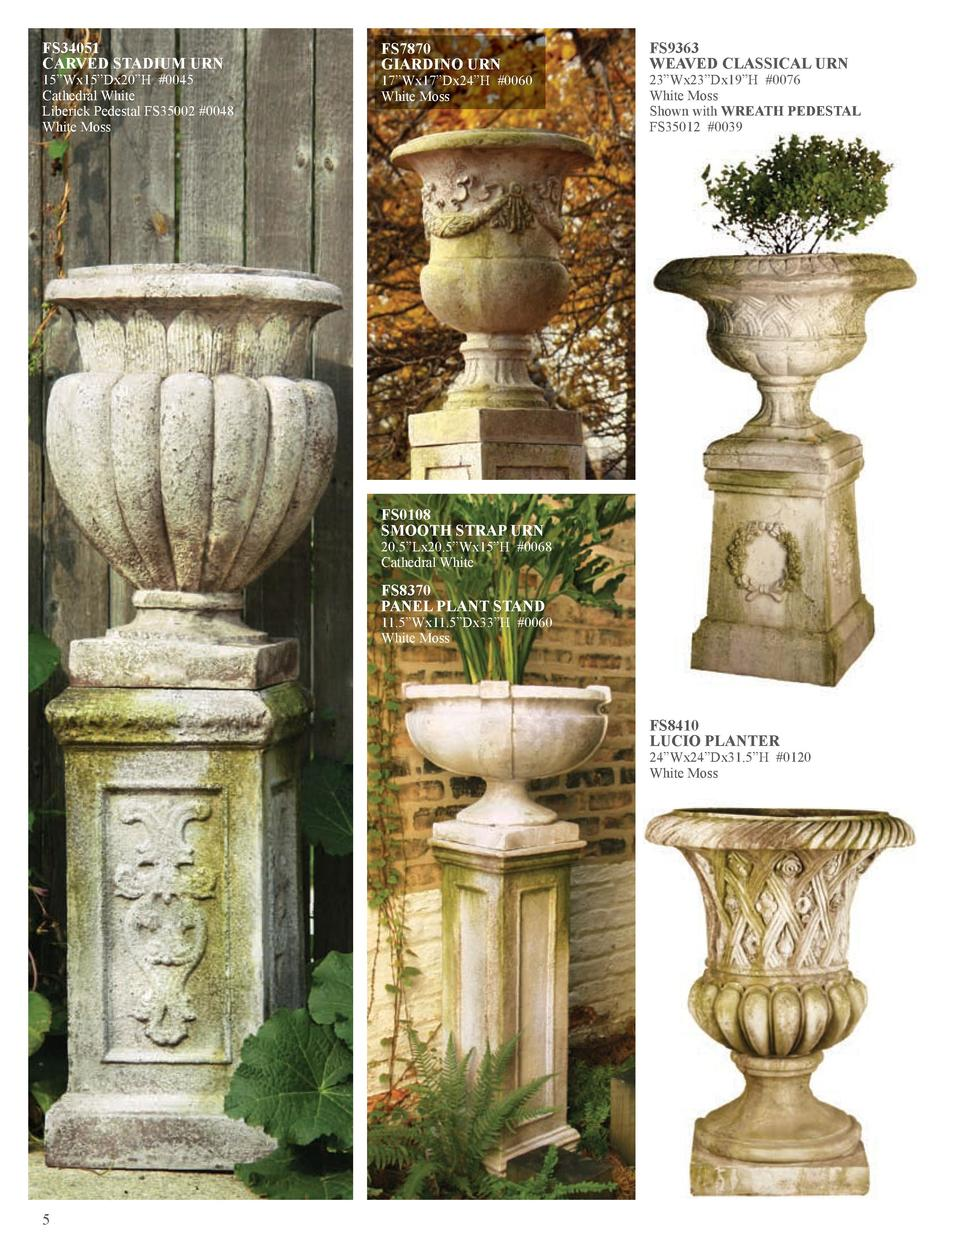 FS34051 CARVED STADIUM URN  15   Wx15   Dx20   H  0045 Cathedral White Liberick Pedestal FS35002  0048 White Moss  FS7870 ...